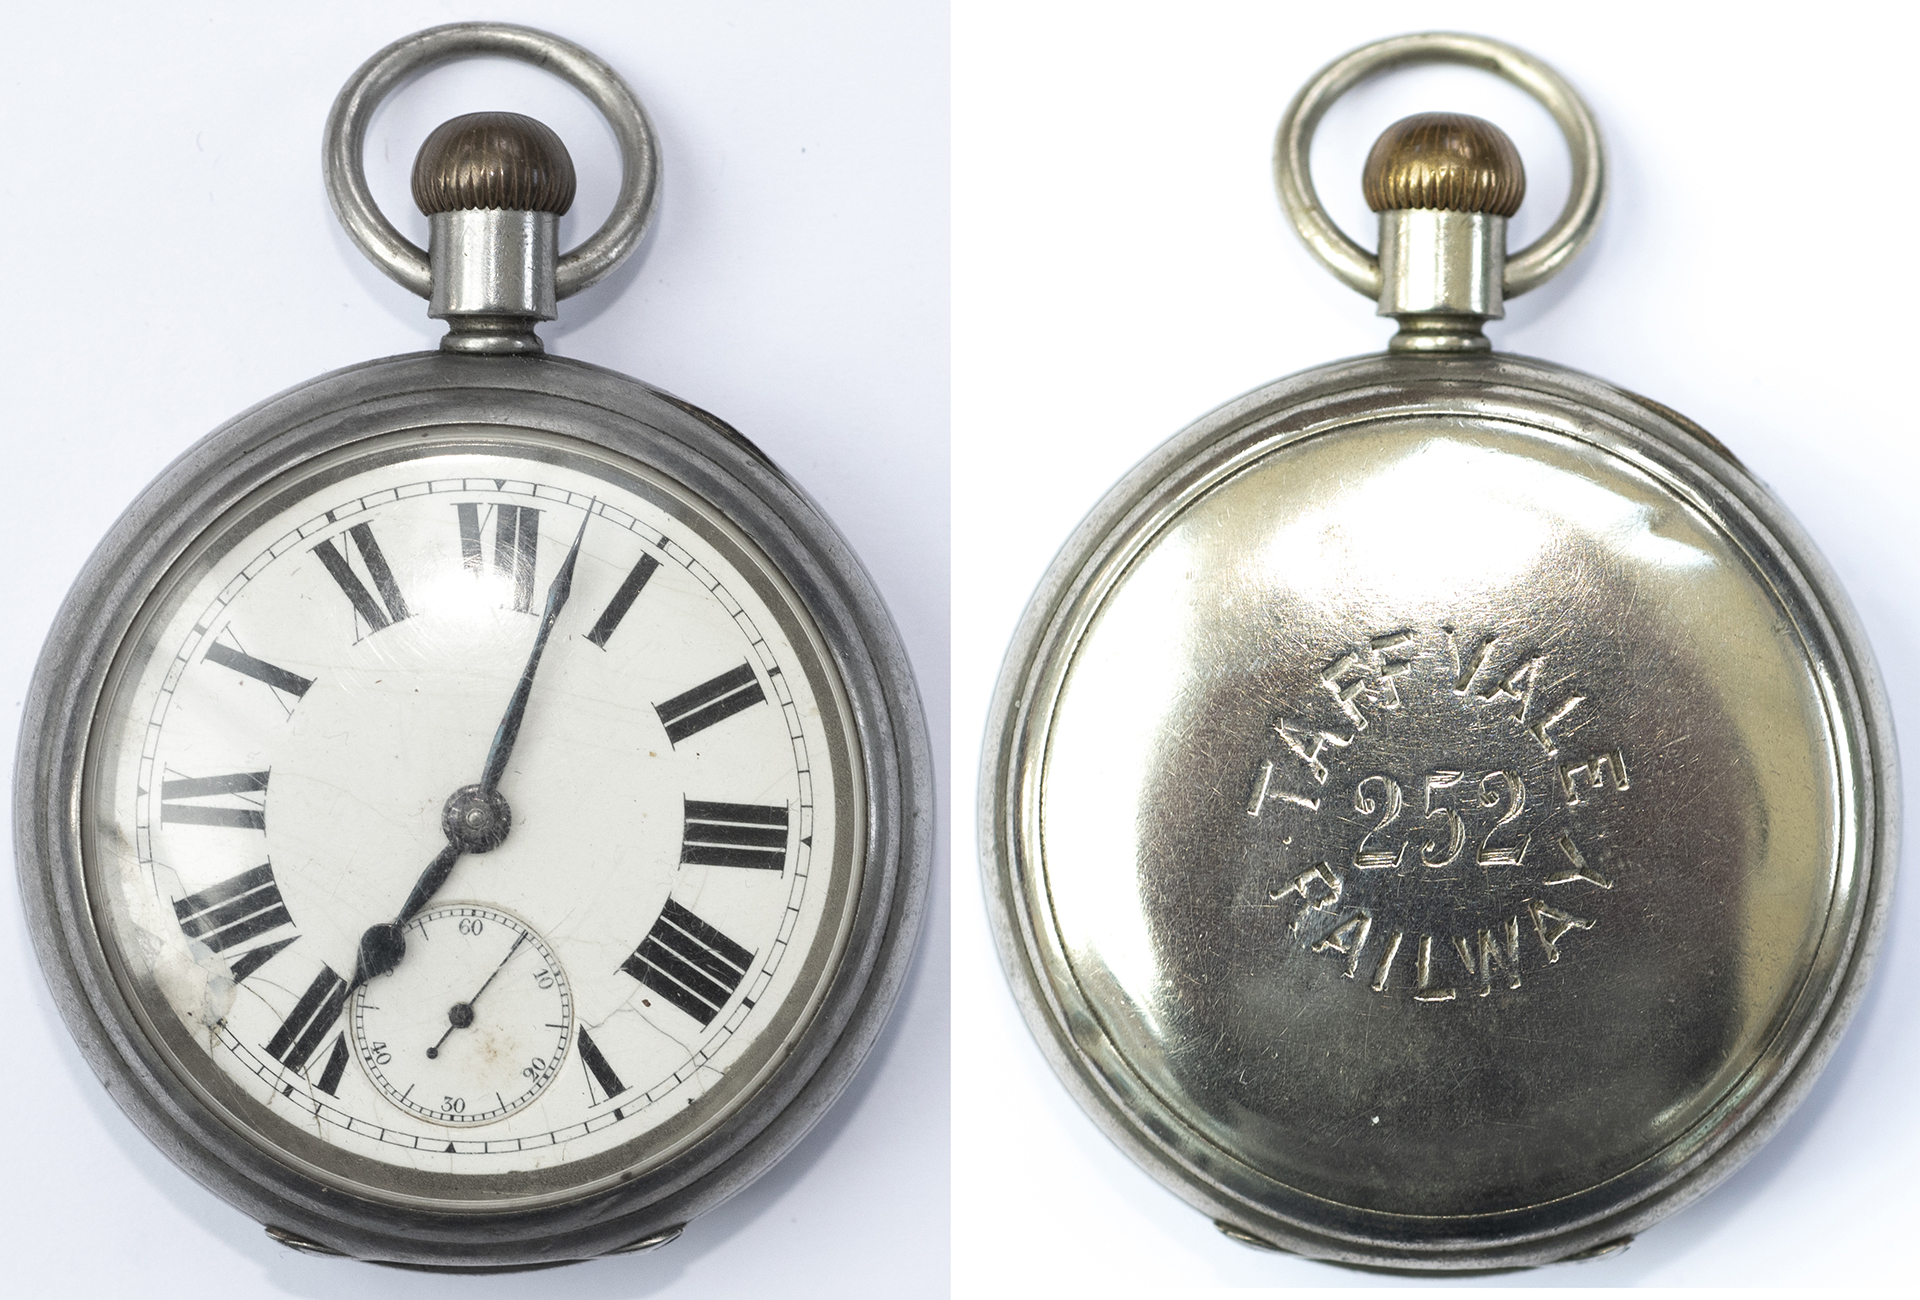 Taff Vale Railway nickel cased pocket watch with a American Waltham Watch Co movement number